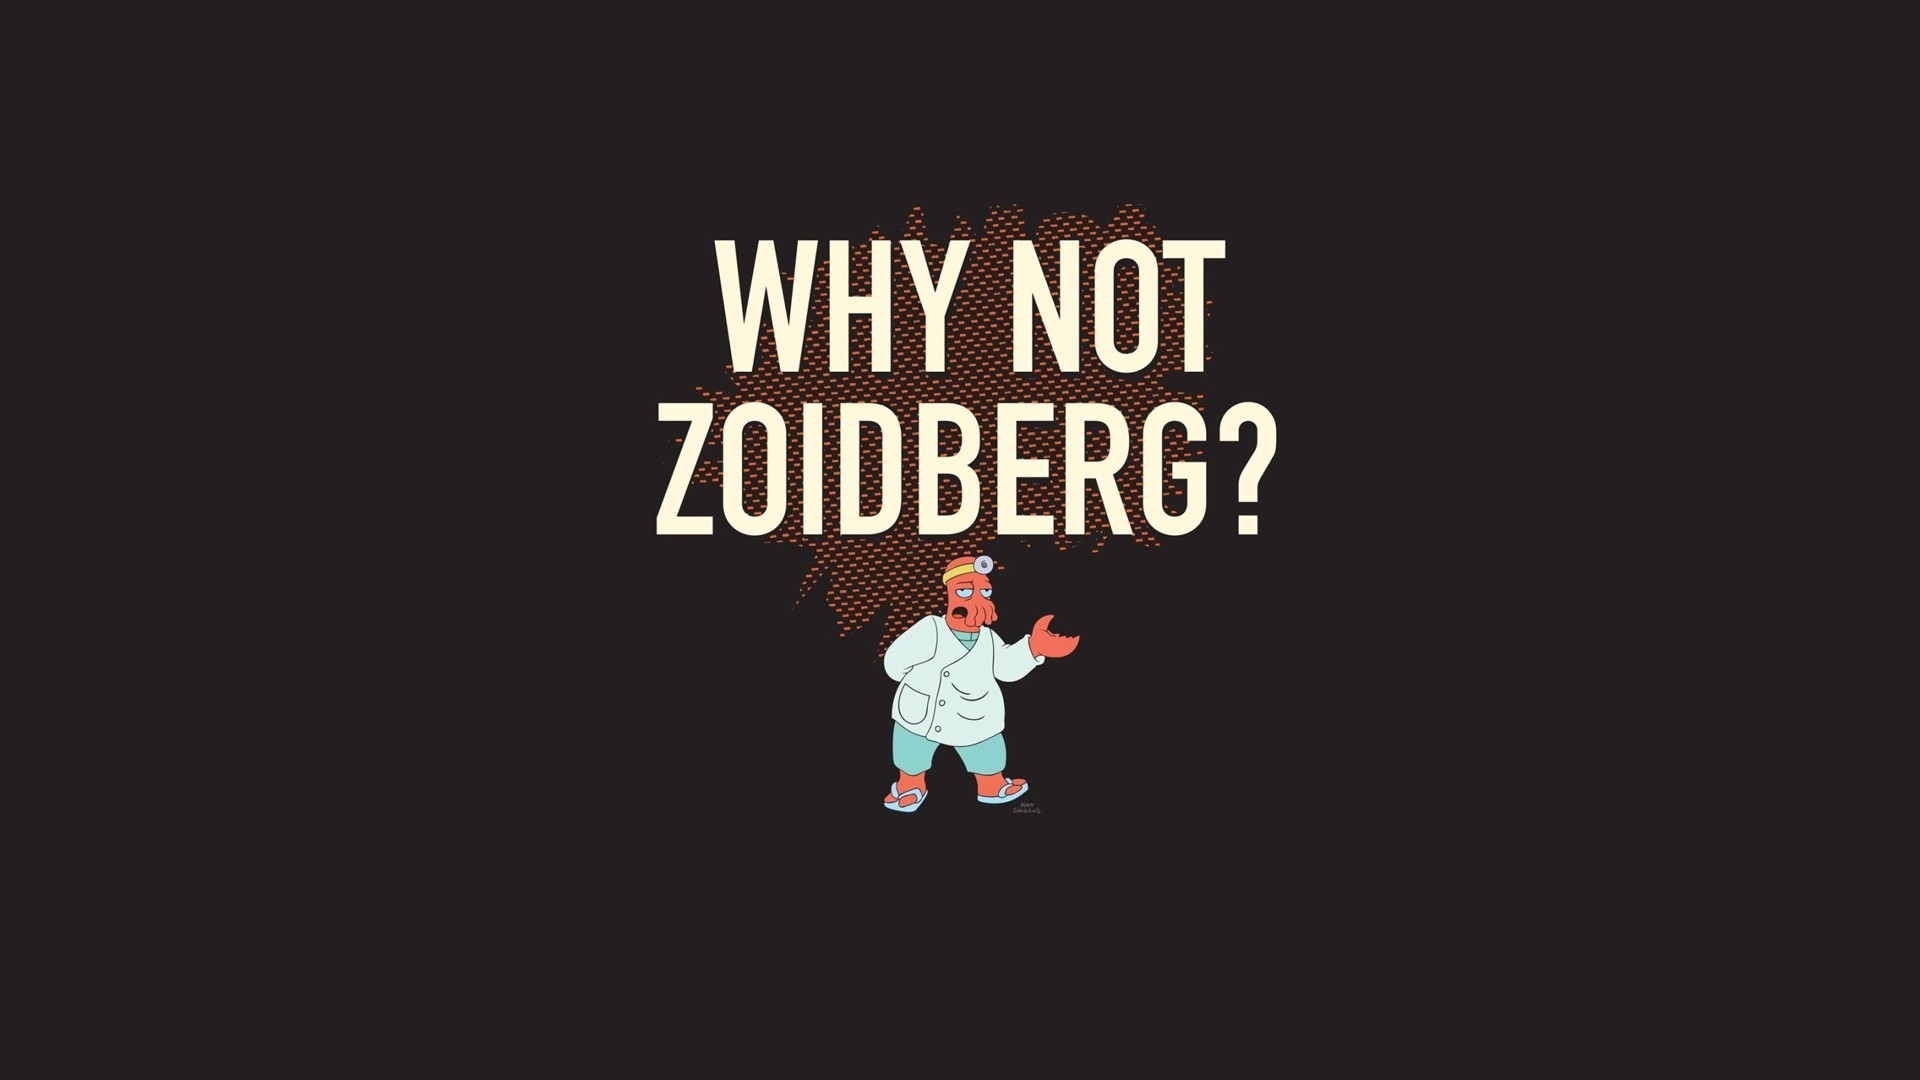 why not zoidberg hd wallpaper | 1920x1080 | id:49905